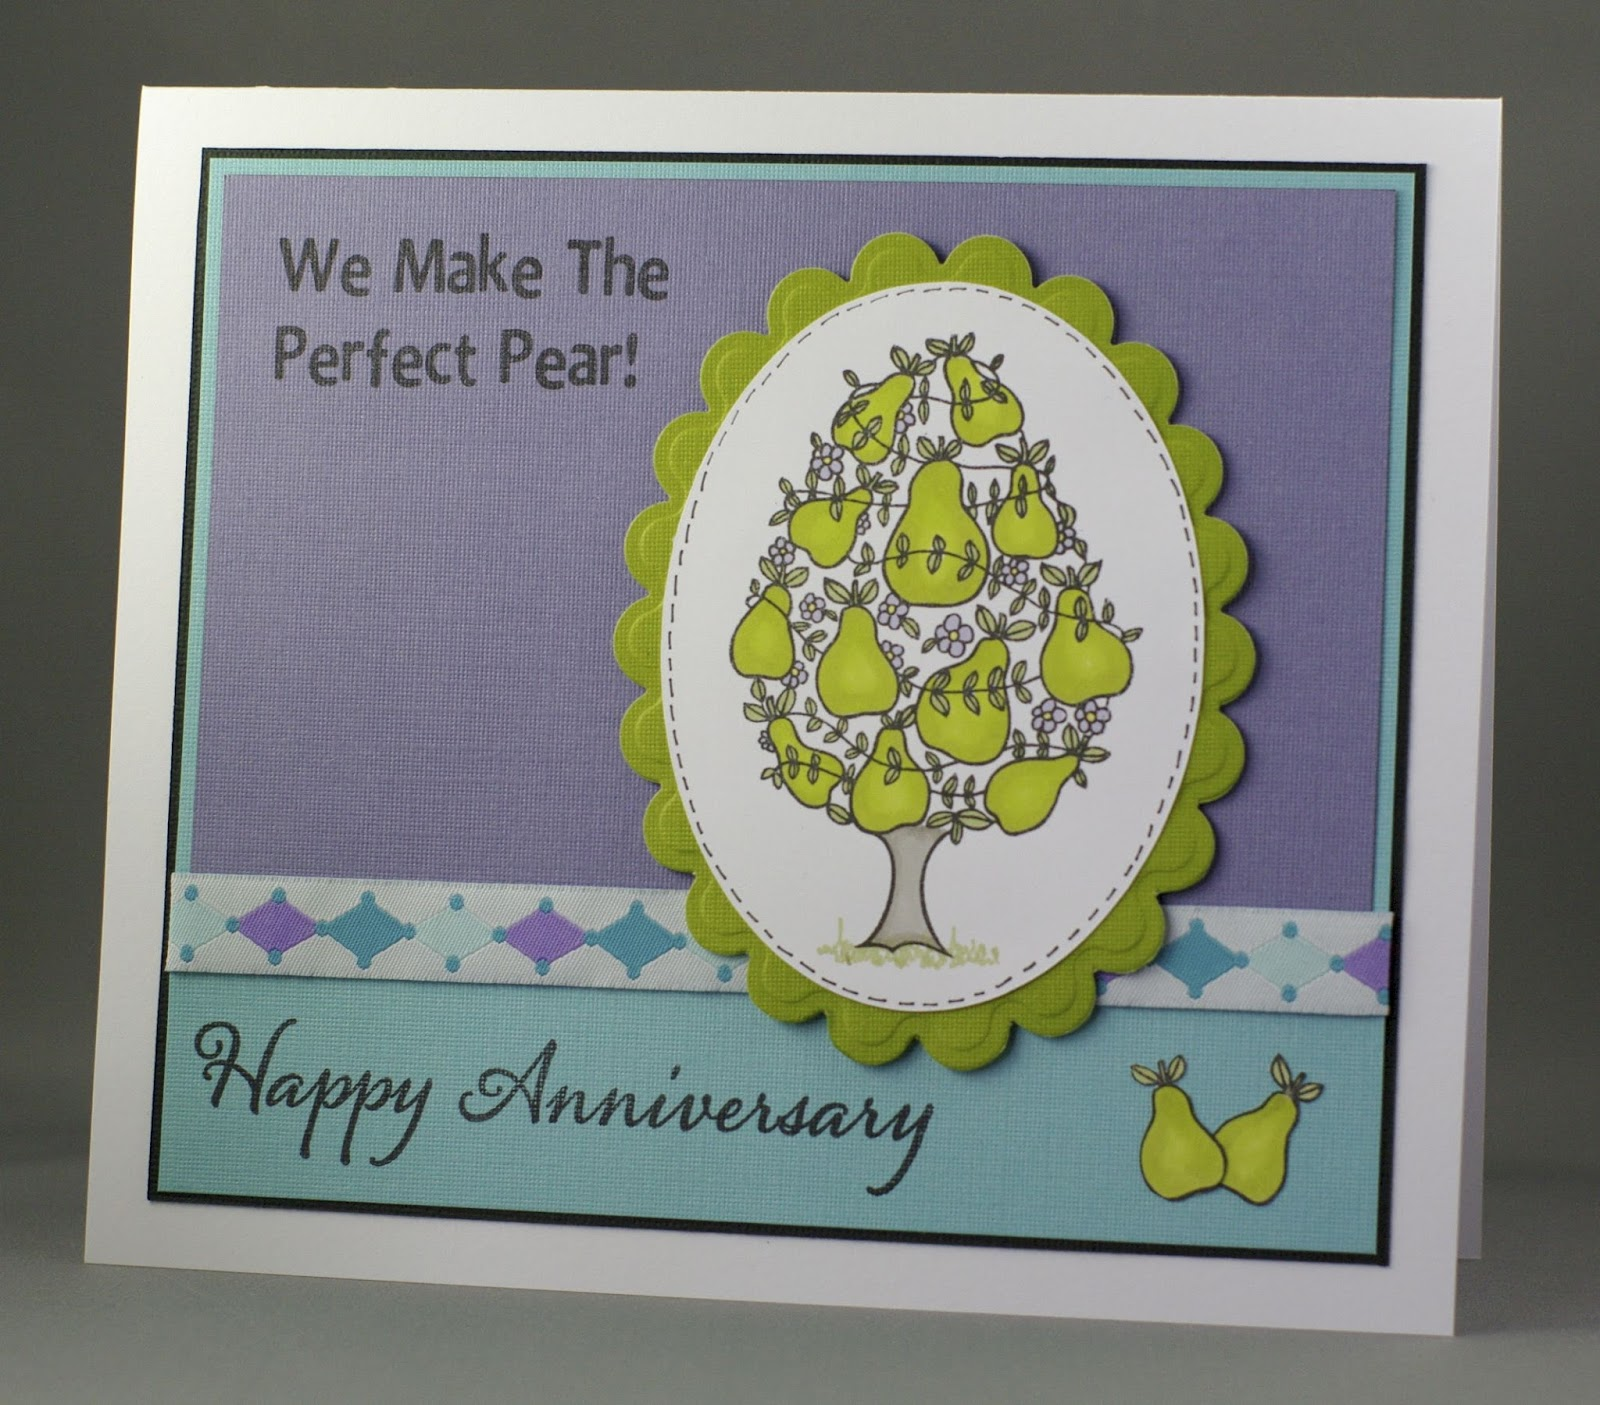 Perfect For Anniversary Cards And: Lynne's Crafty Little Blog: We Make The Perfect Pear